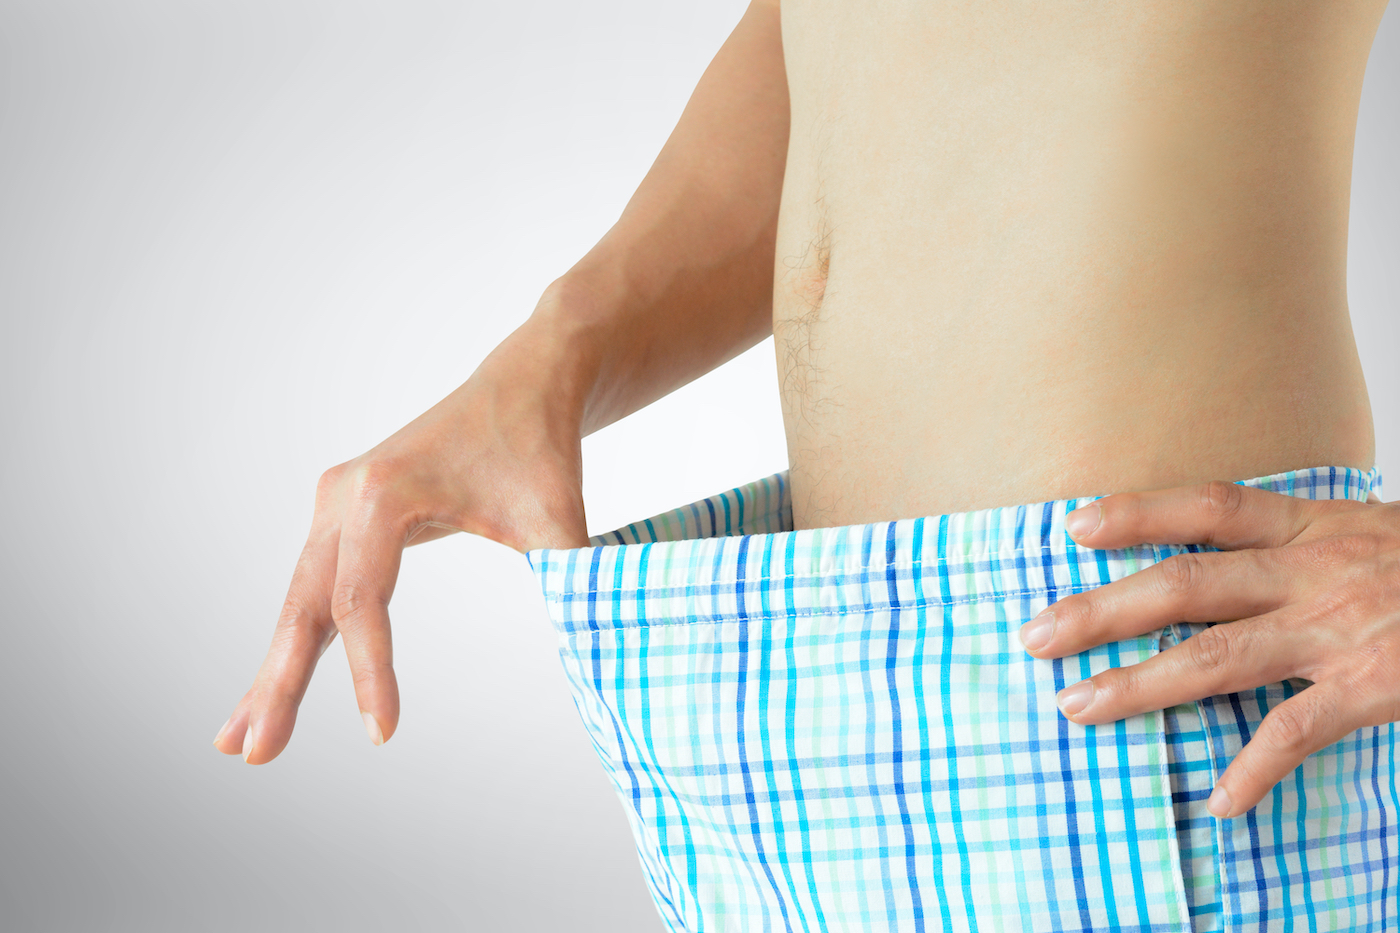 Pearly penile go do away papules What is